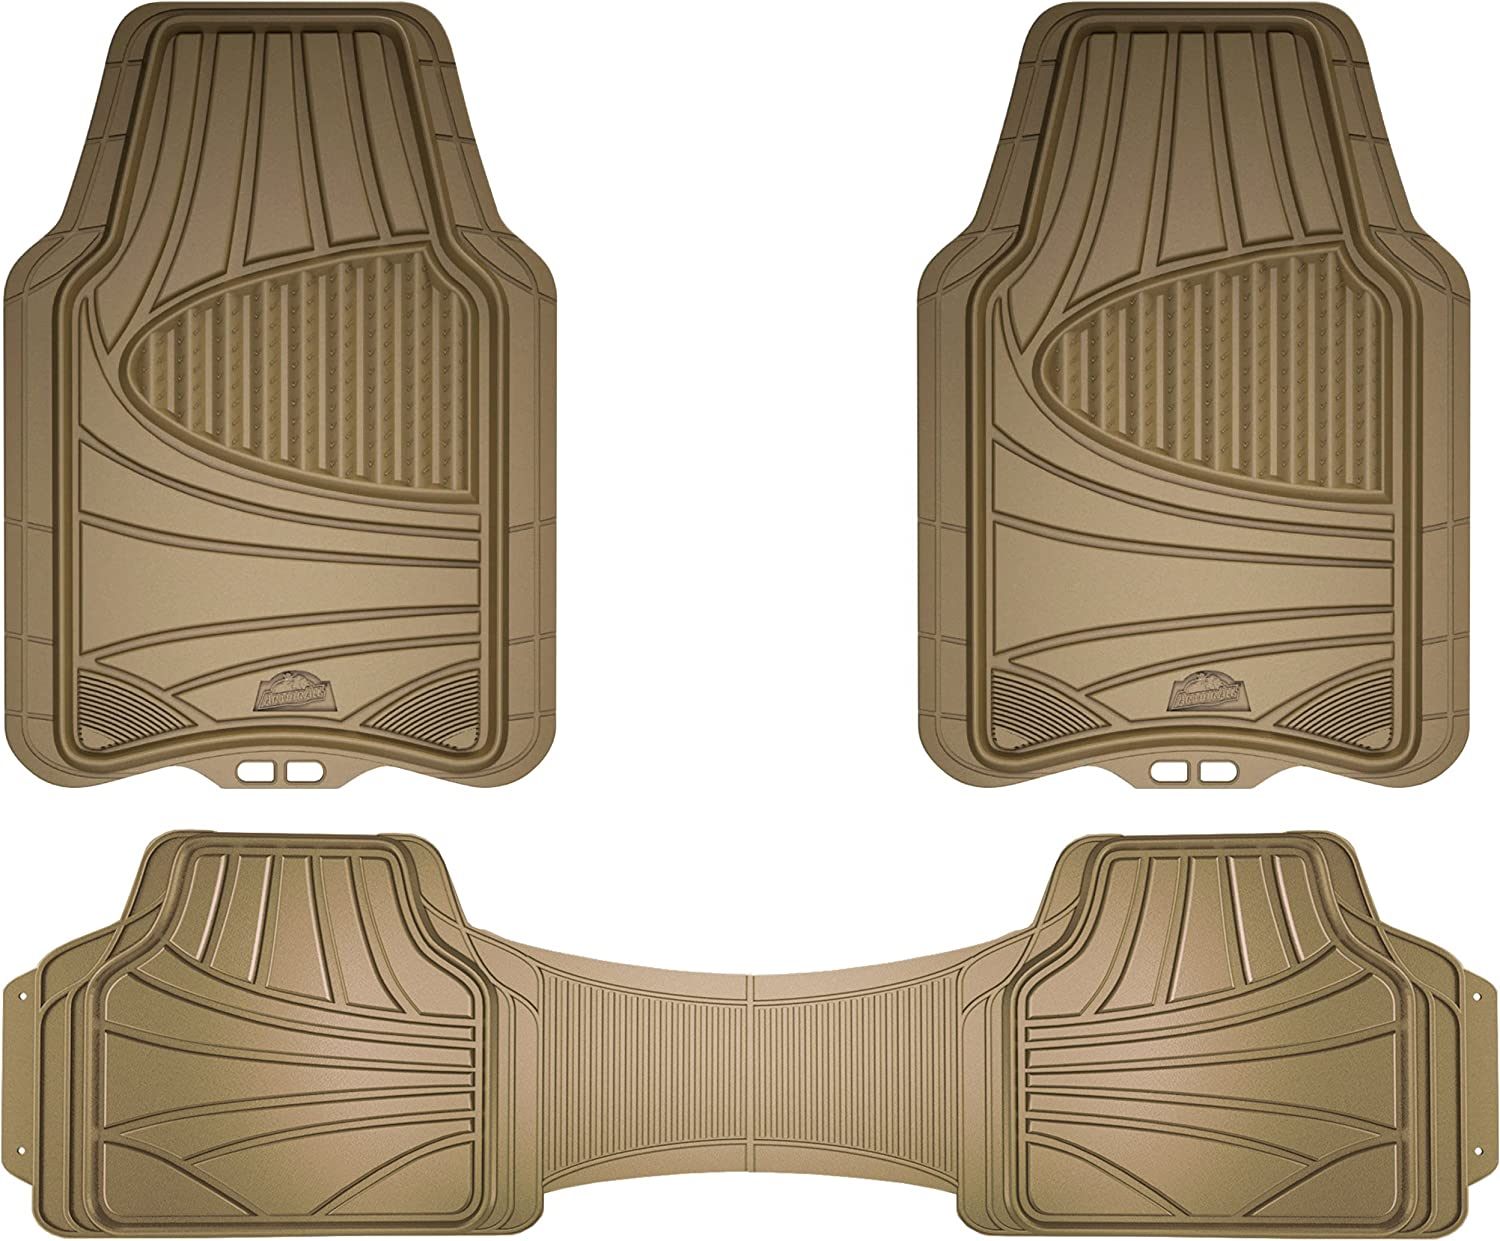 Armor All 78845 Tan 3-Piece Full Coverage Rubber Floor Mat